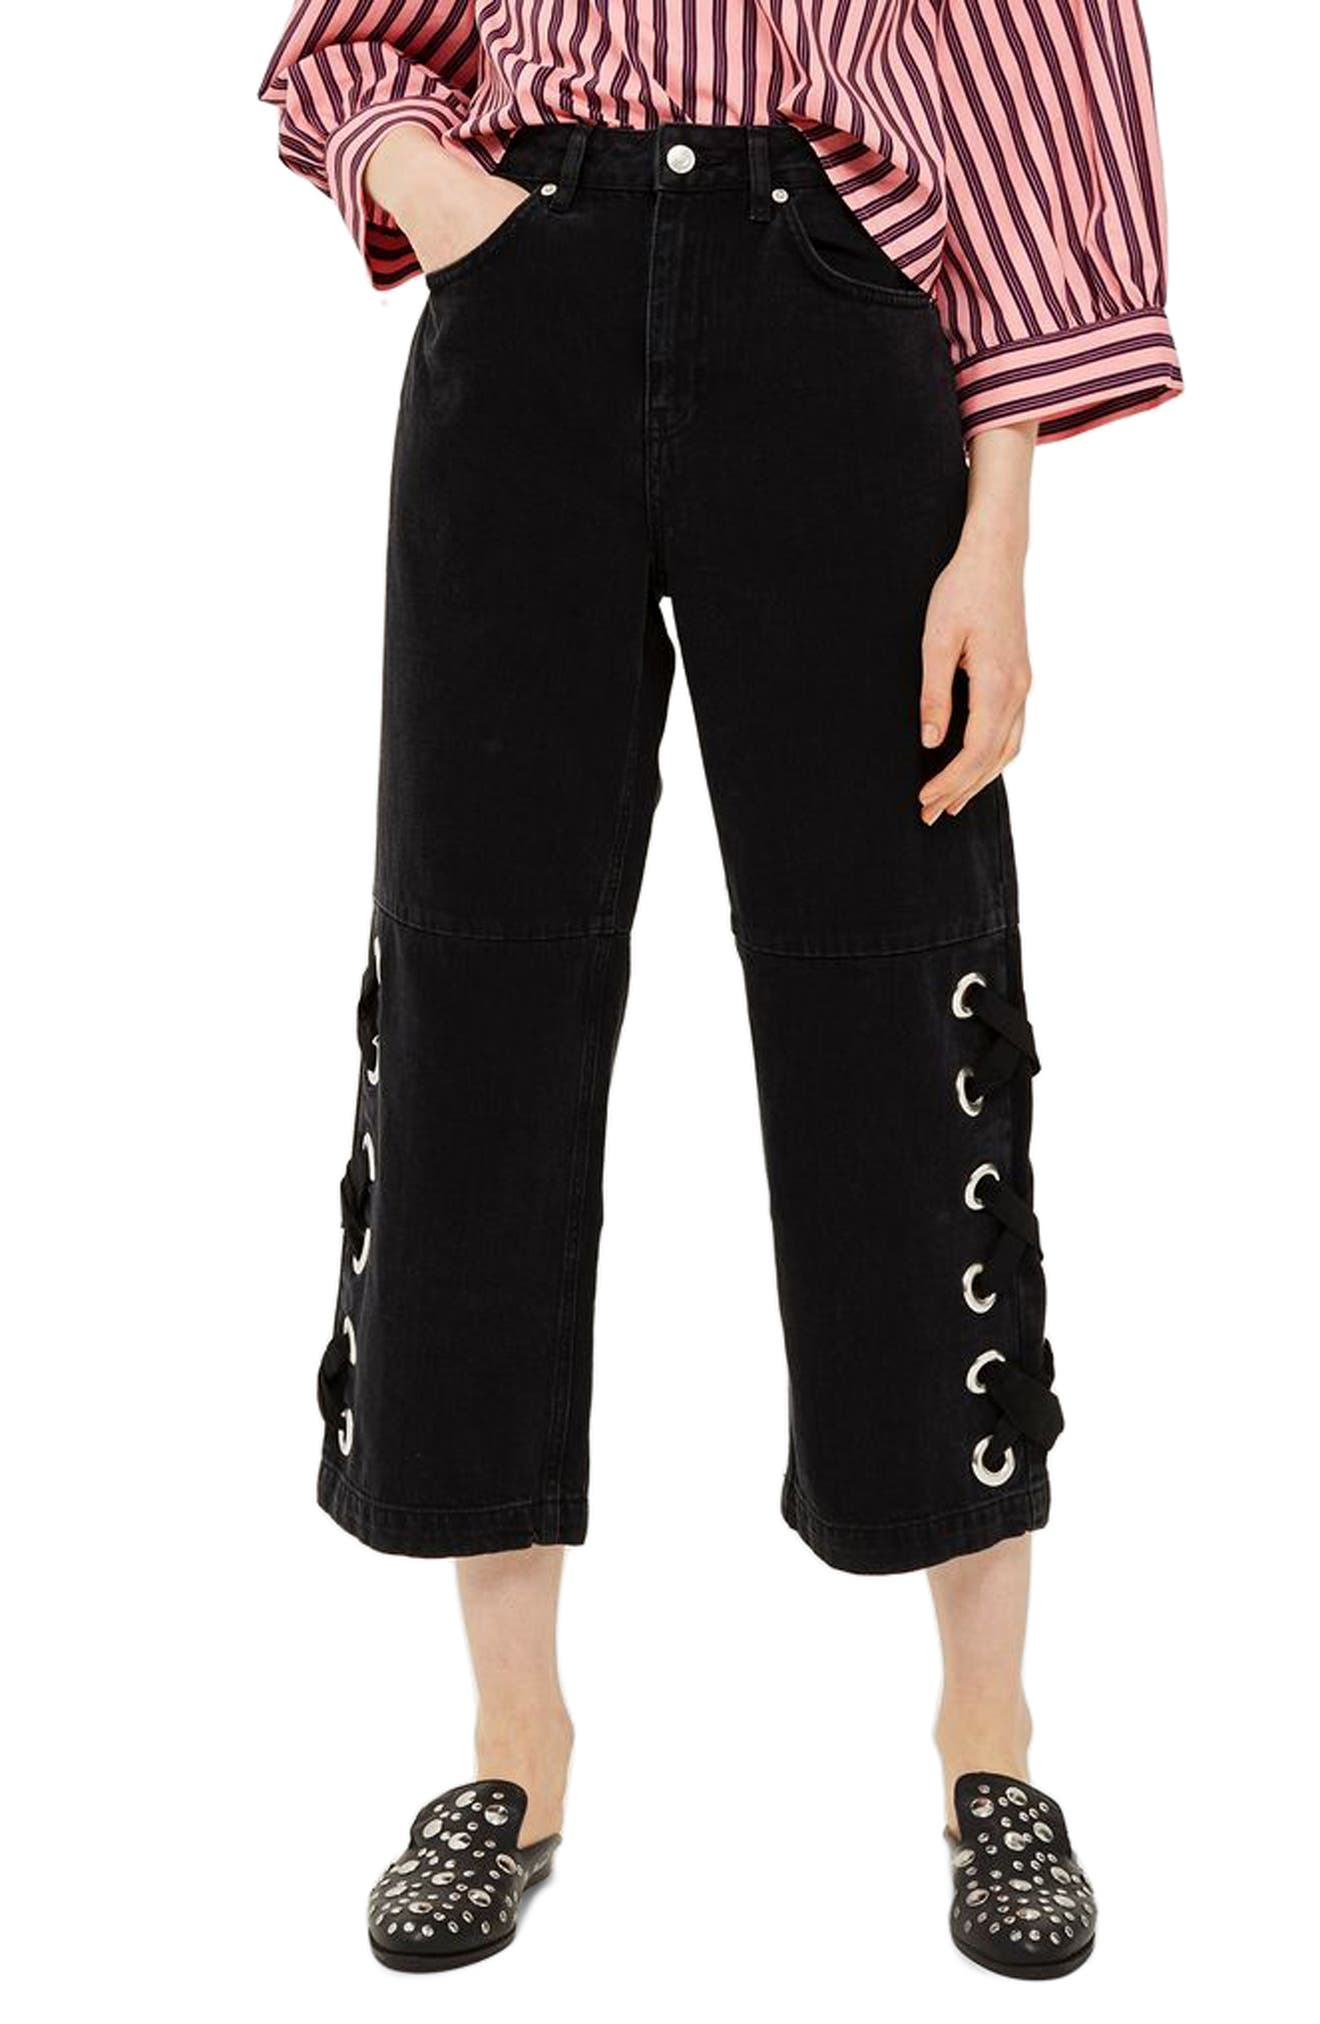 Topshop Lace Up Hem Crop Wide Leg Jeans